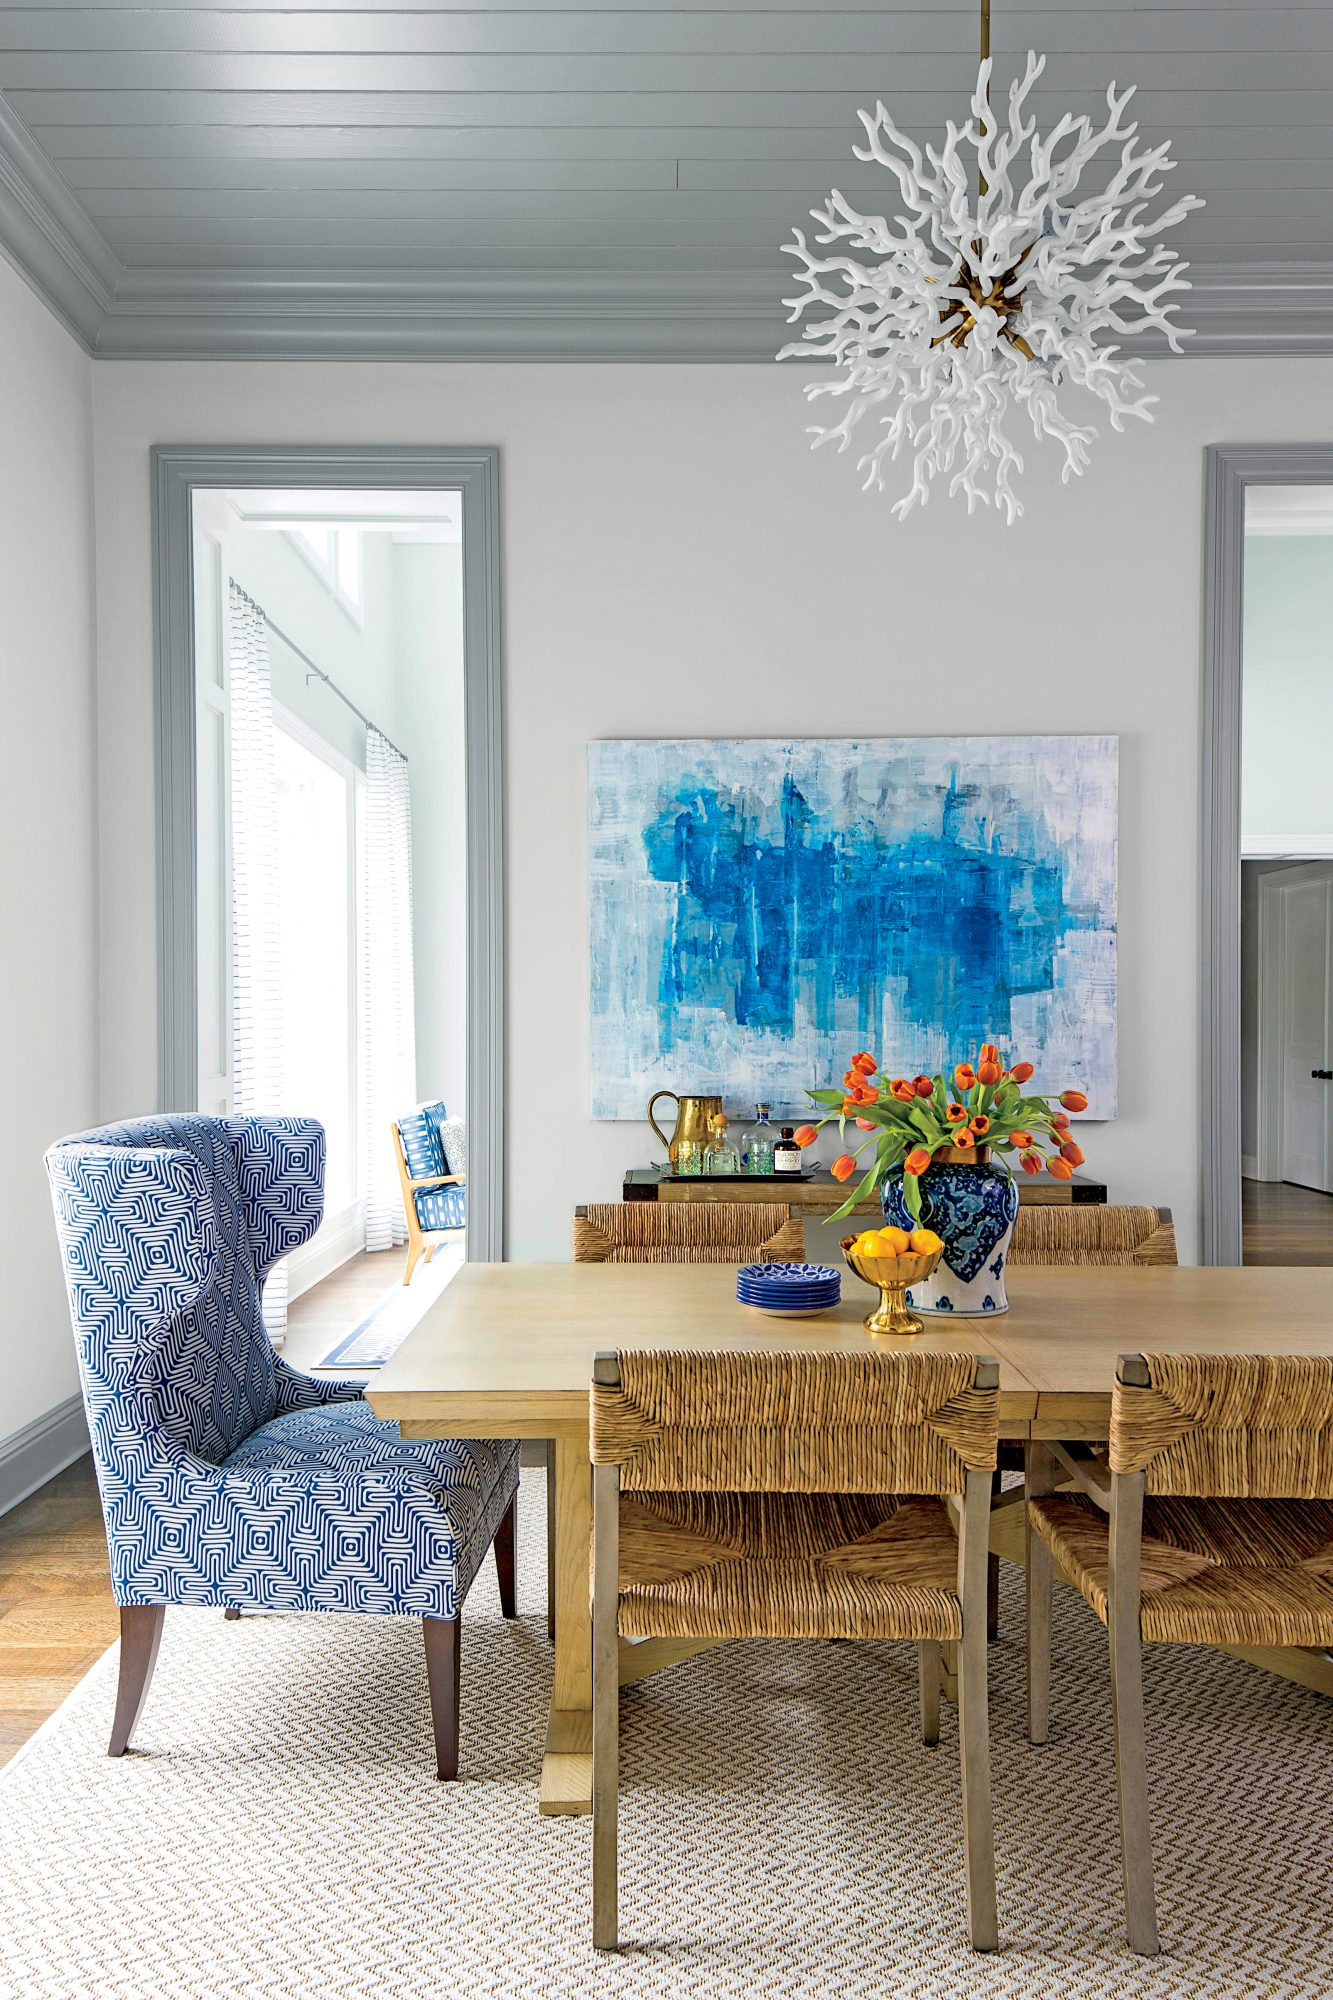 Biggest Decorating Don'ts: Floating Rugs